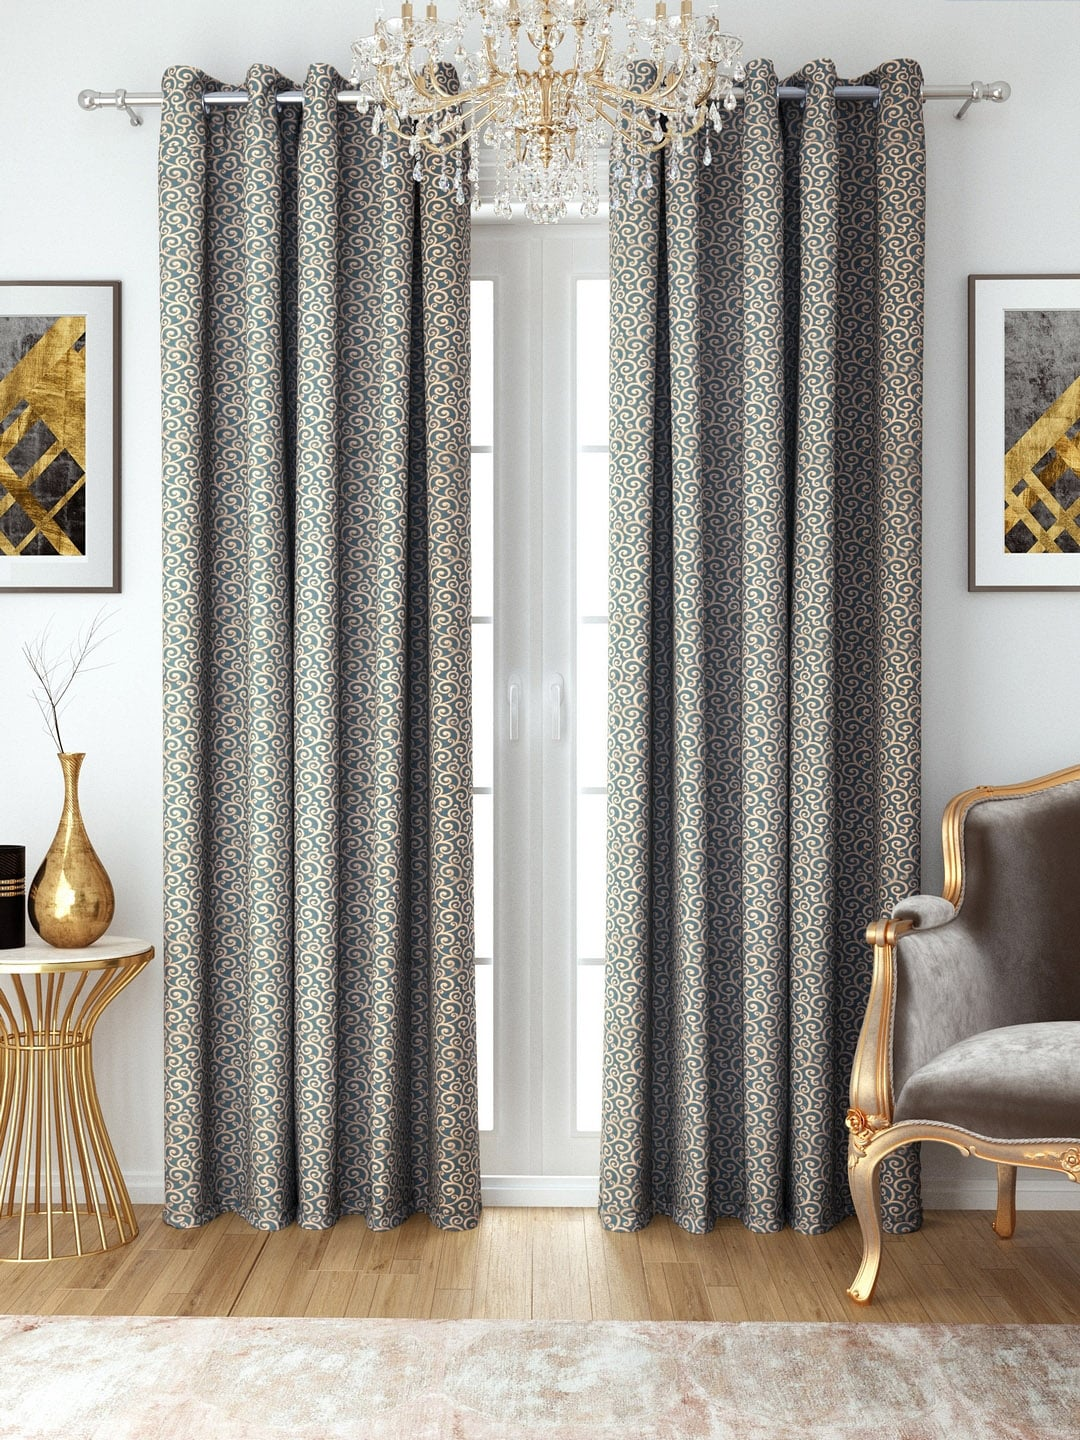 How To Make Curtain Lights Aura Green Brown Jacquard Single Room Darkening Door Curtains